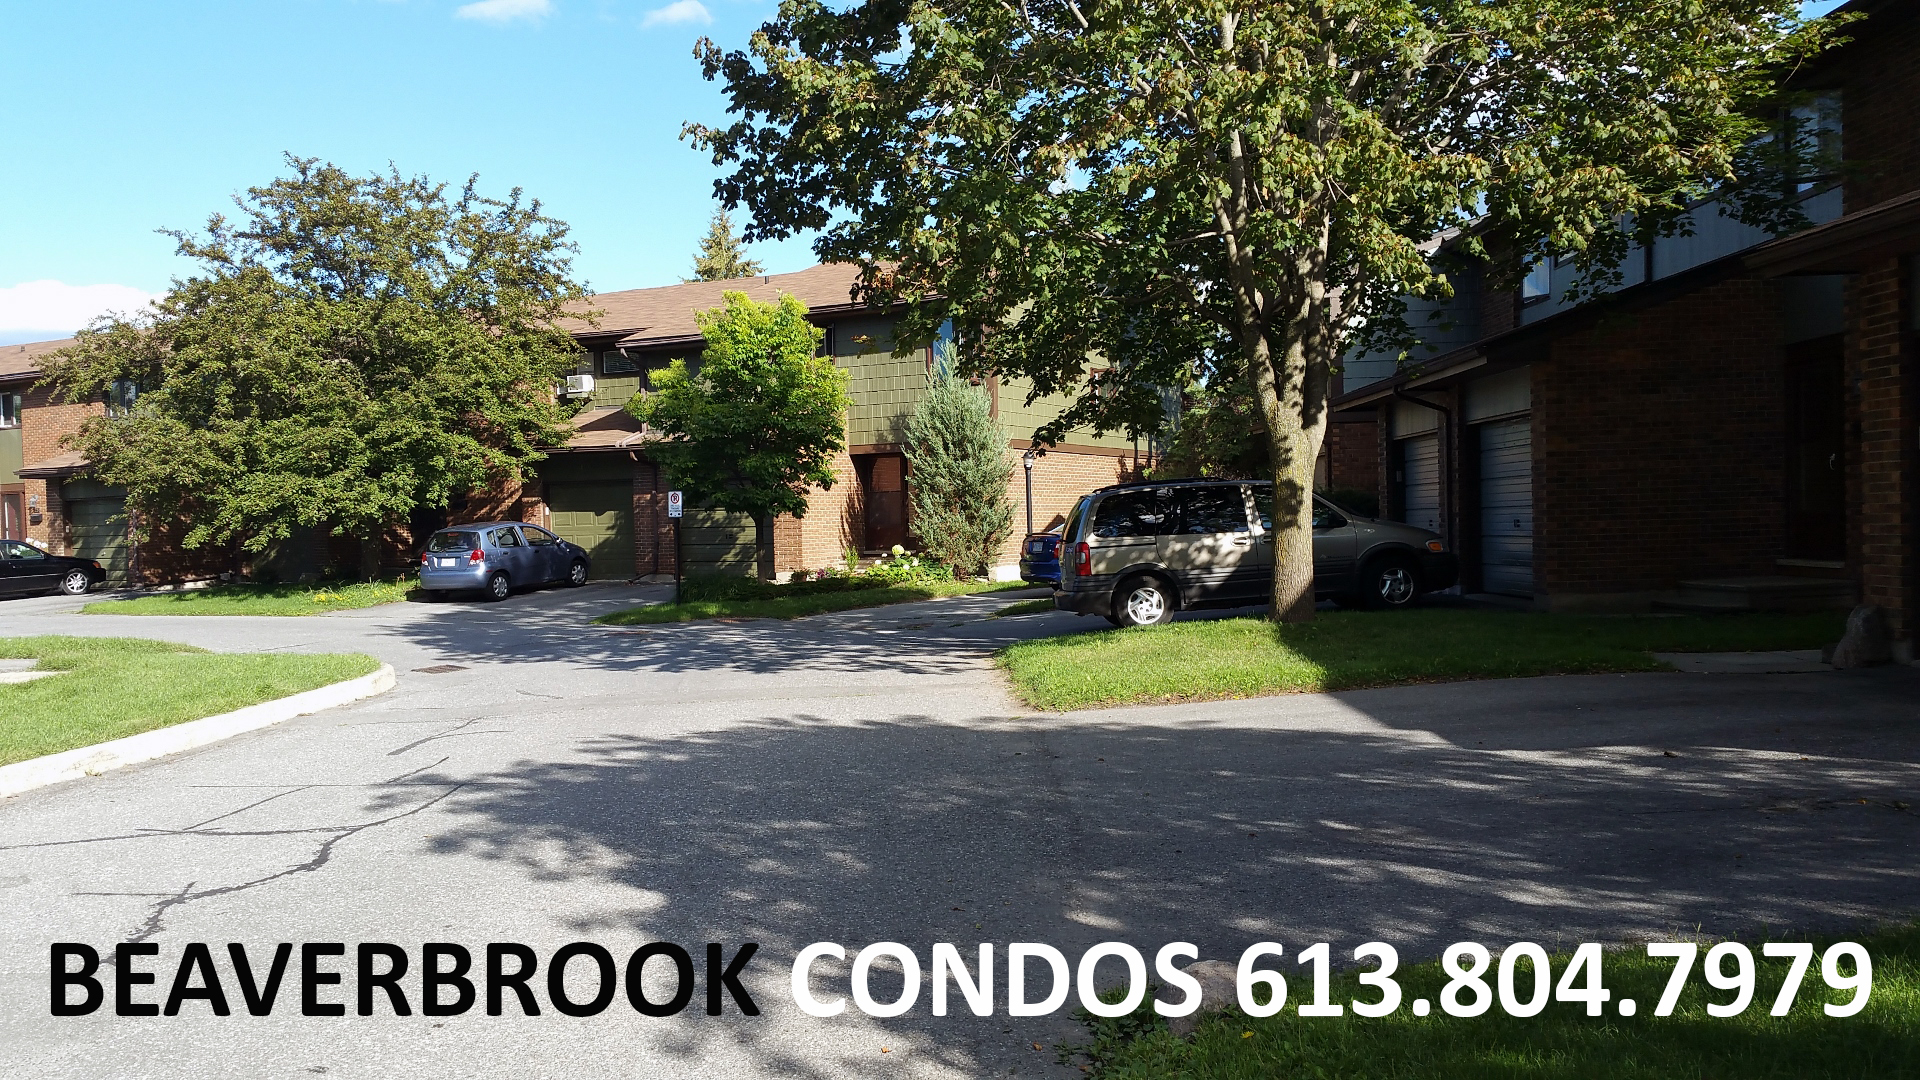 Ottawa Condos For Sale Beaverbrook 5 30 Best Way